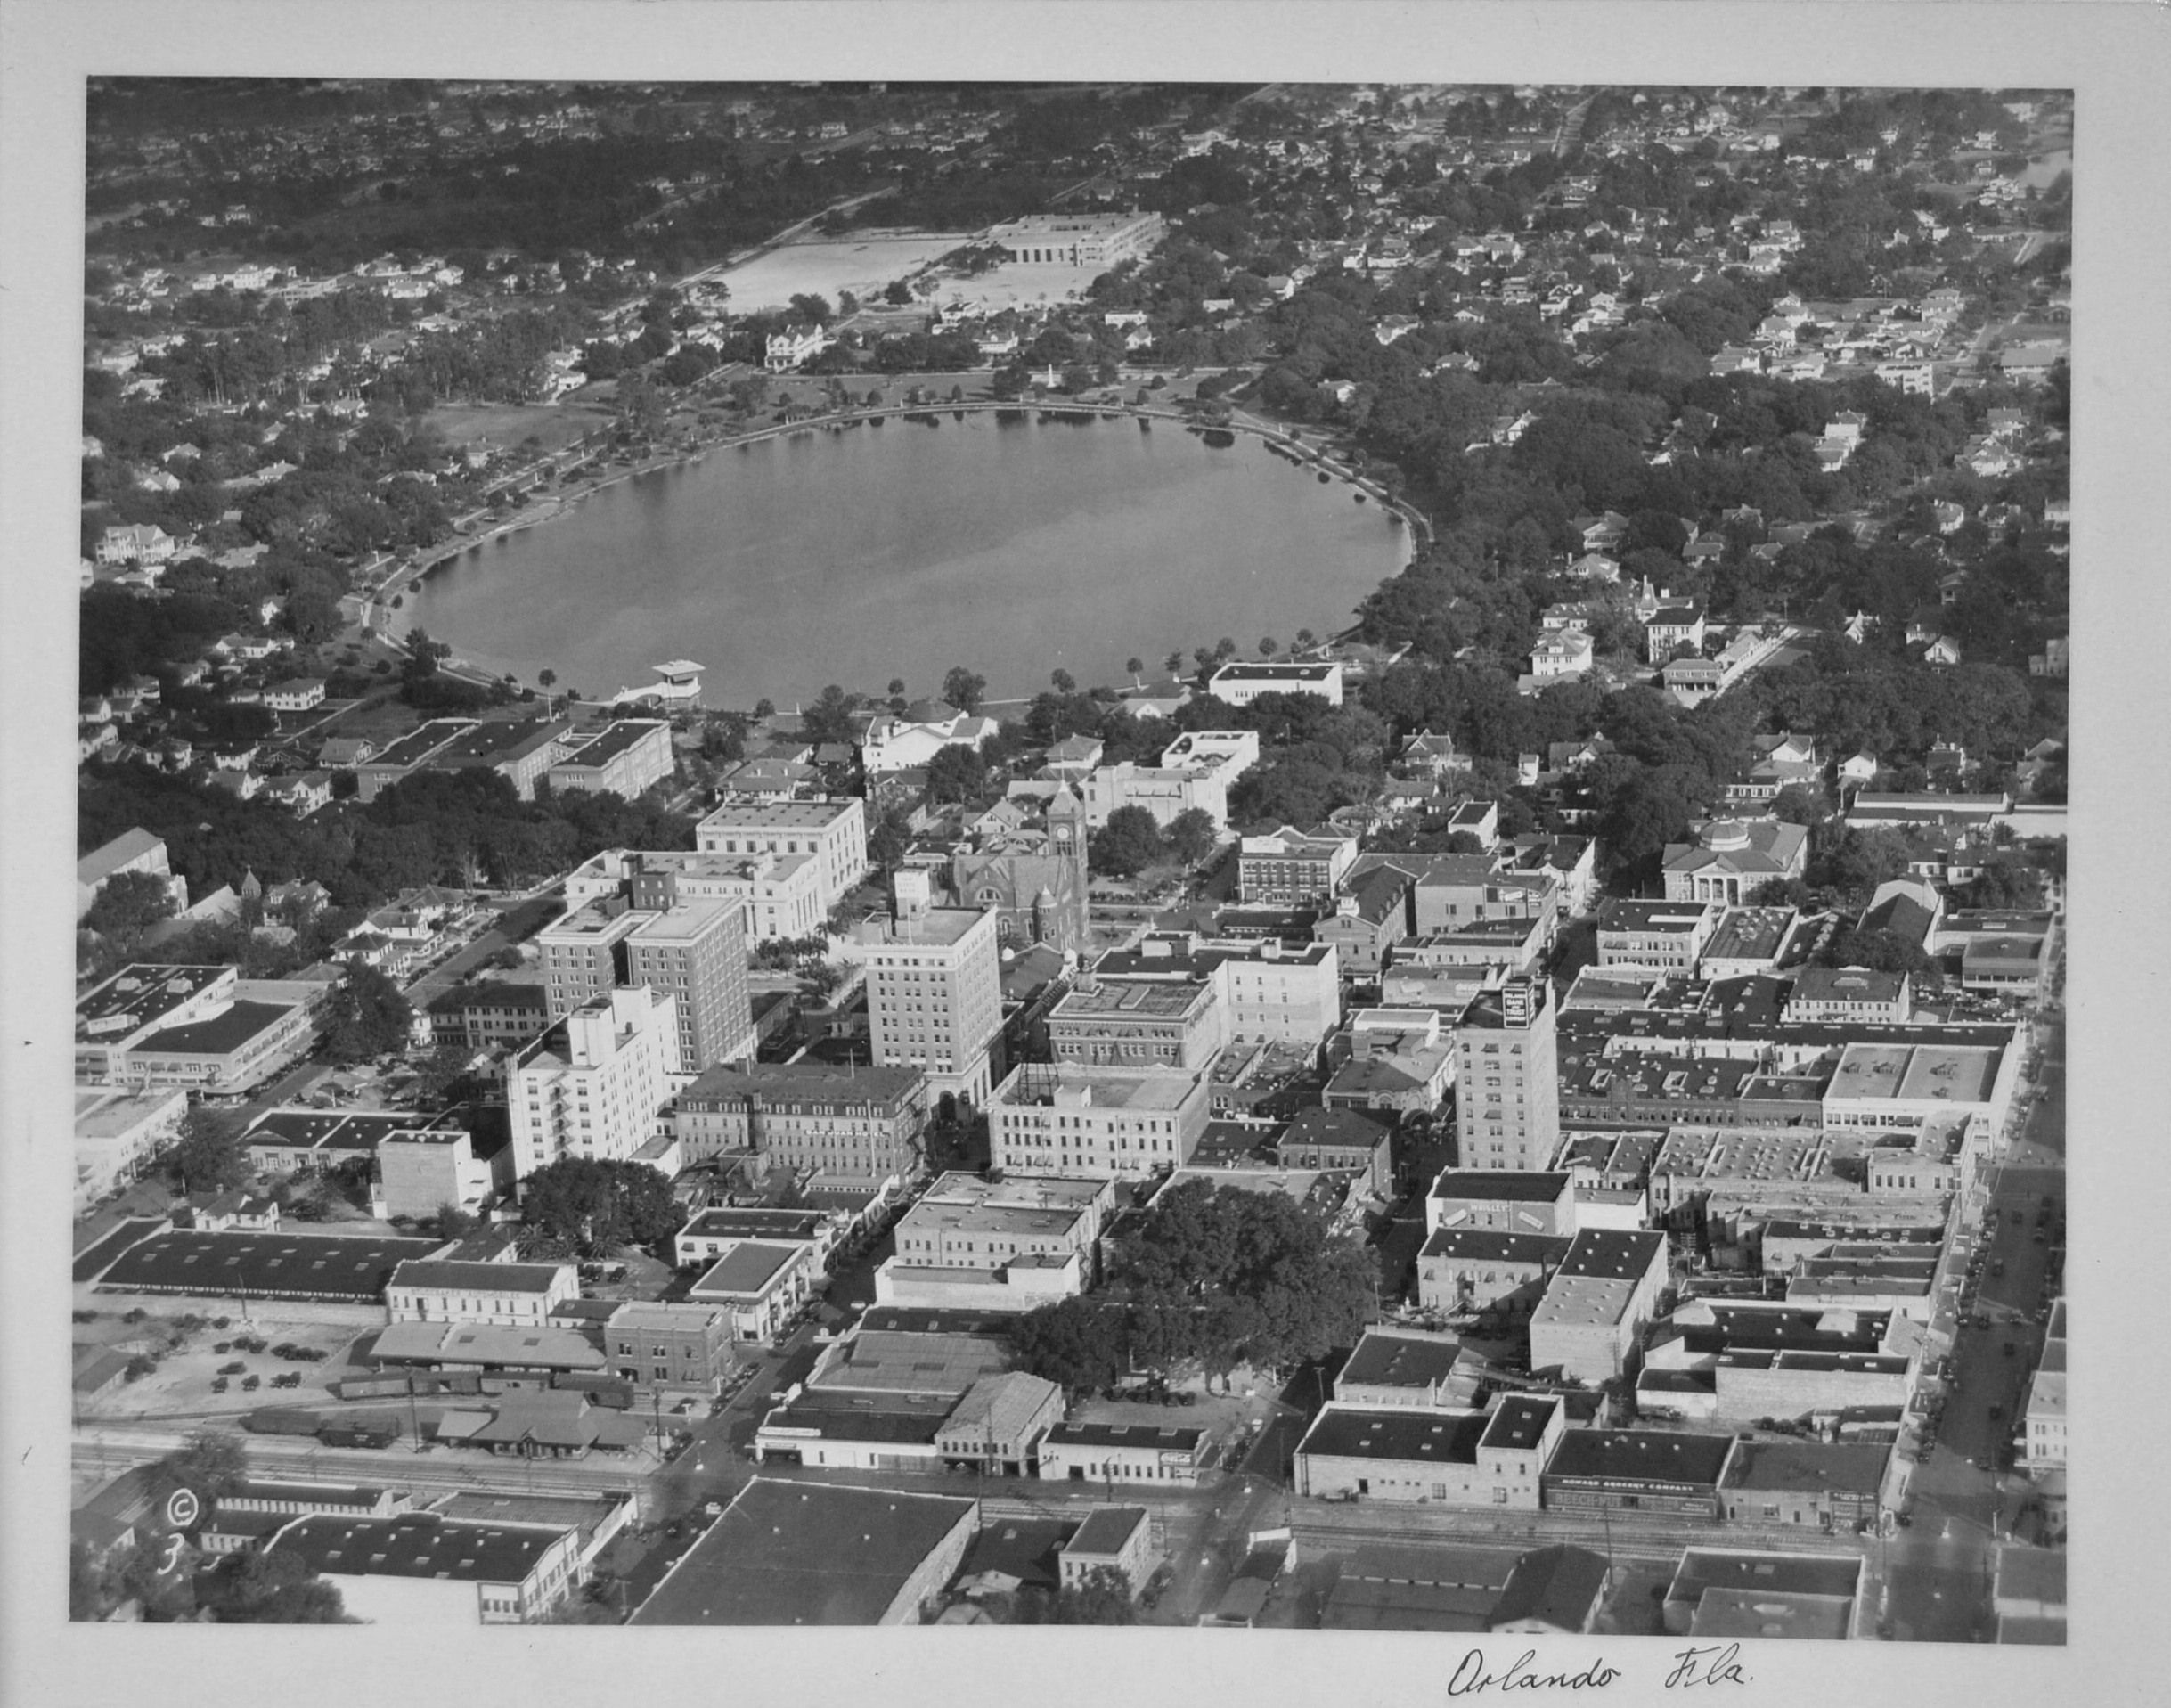 Downtown Orlando Aerial View Looking East Lake Eola Is In The Top